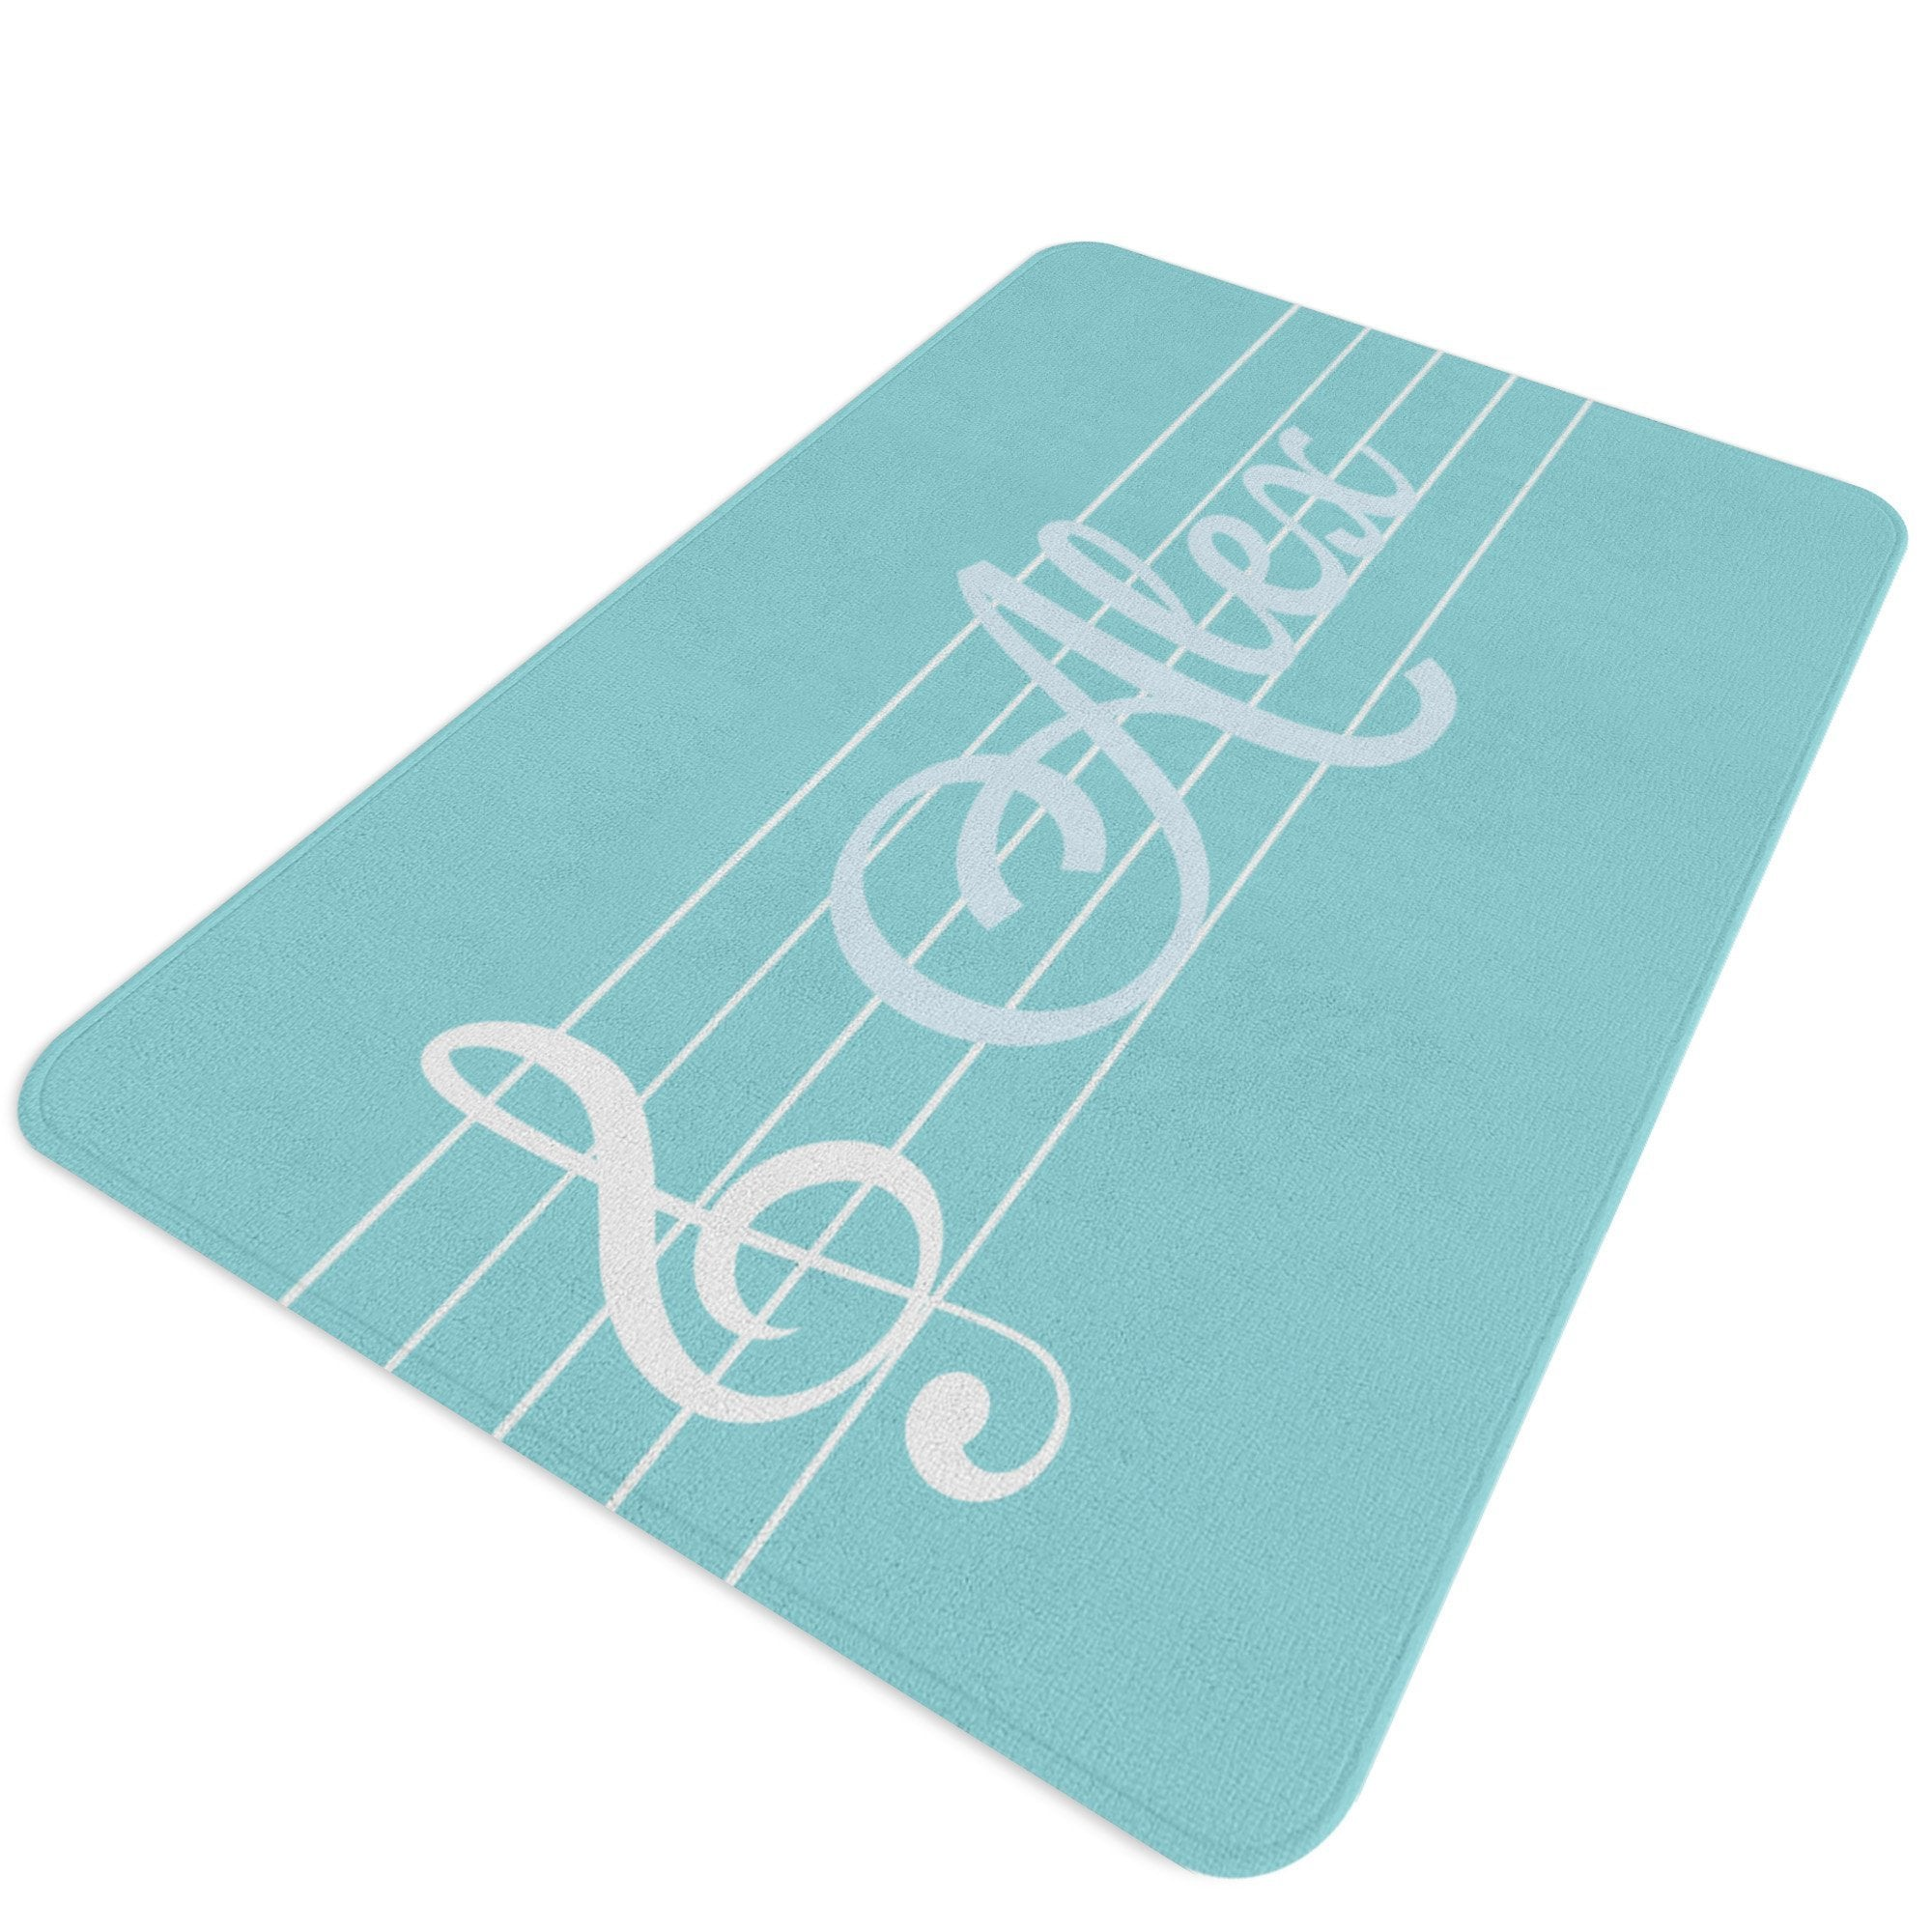 Music Rug, Music Notes Rug, Music Room Decor, Personalized Rug, Music Decor, Piano Rug, Gift for Piano Player, Gift for Piano Teacher